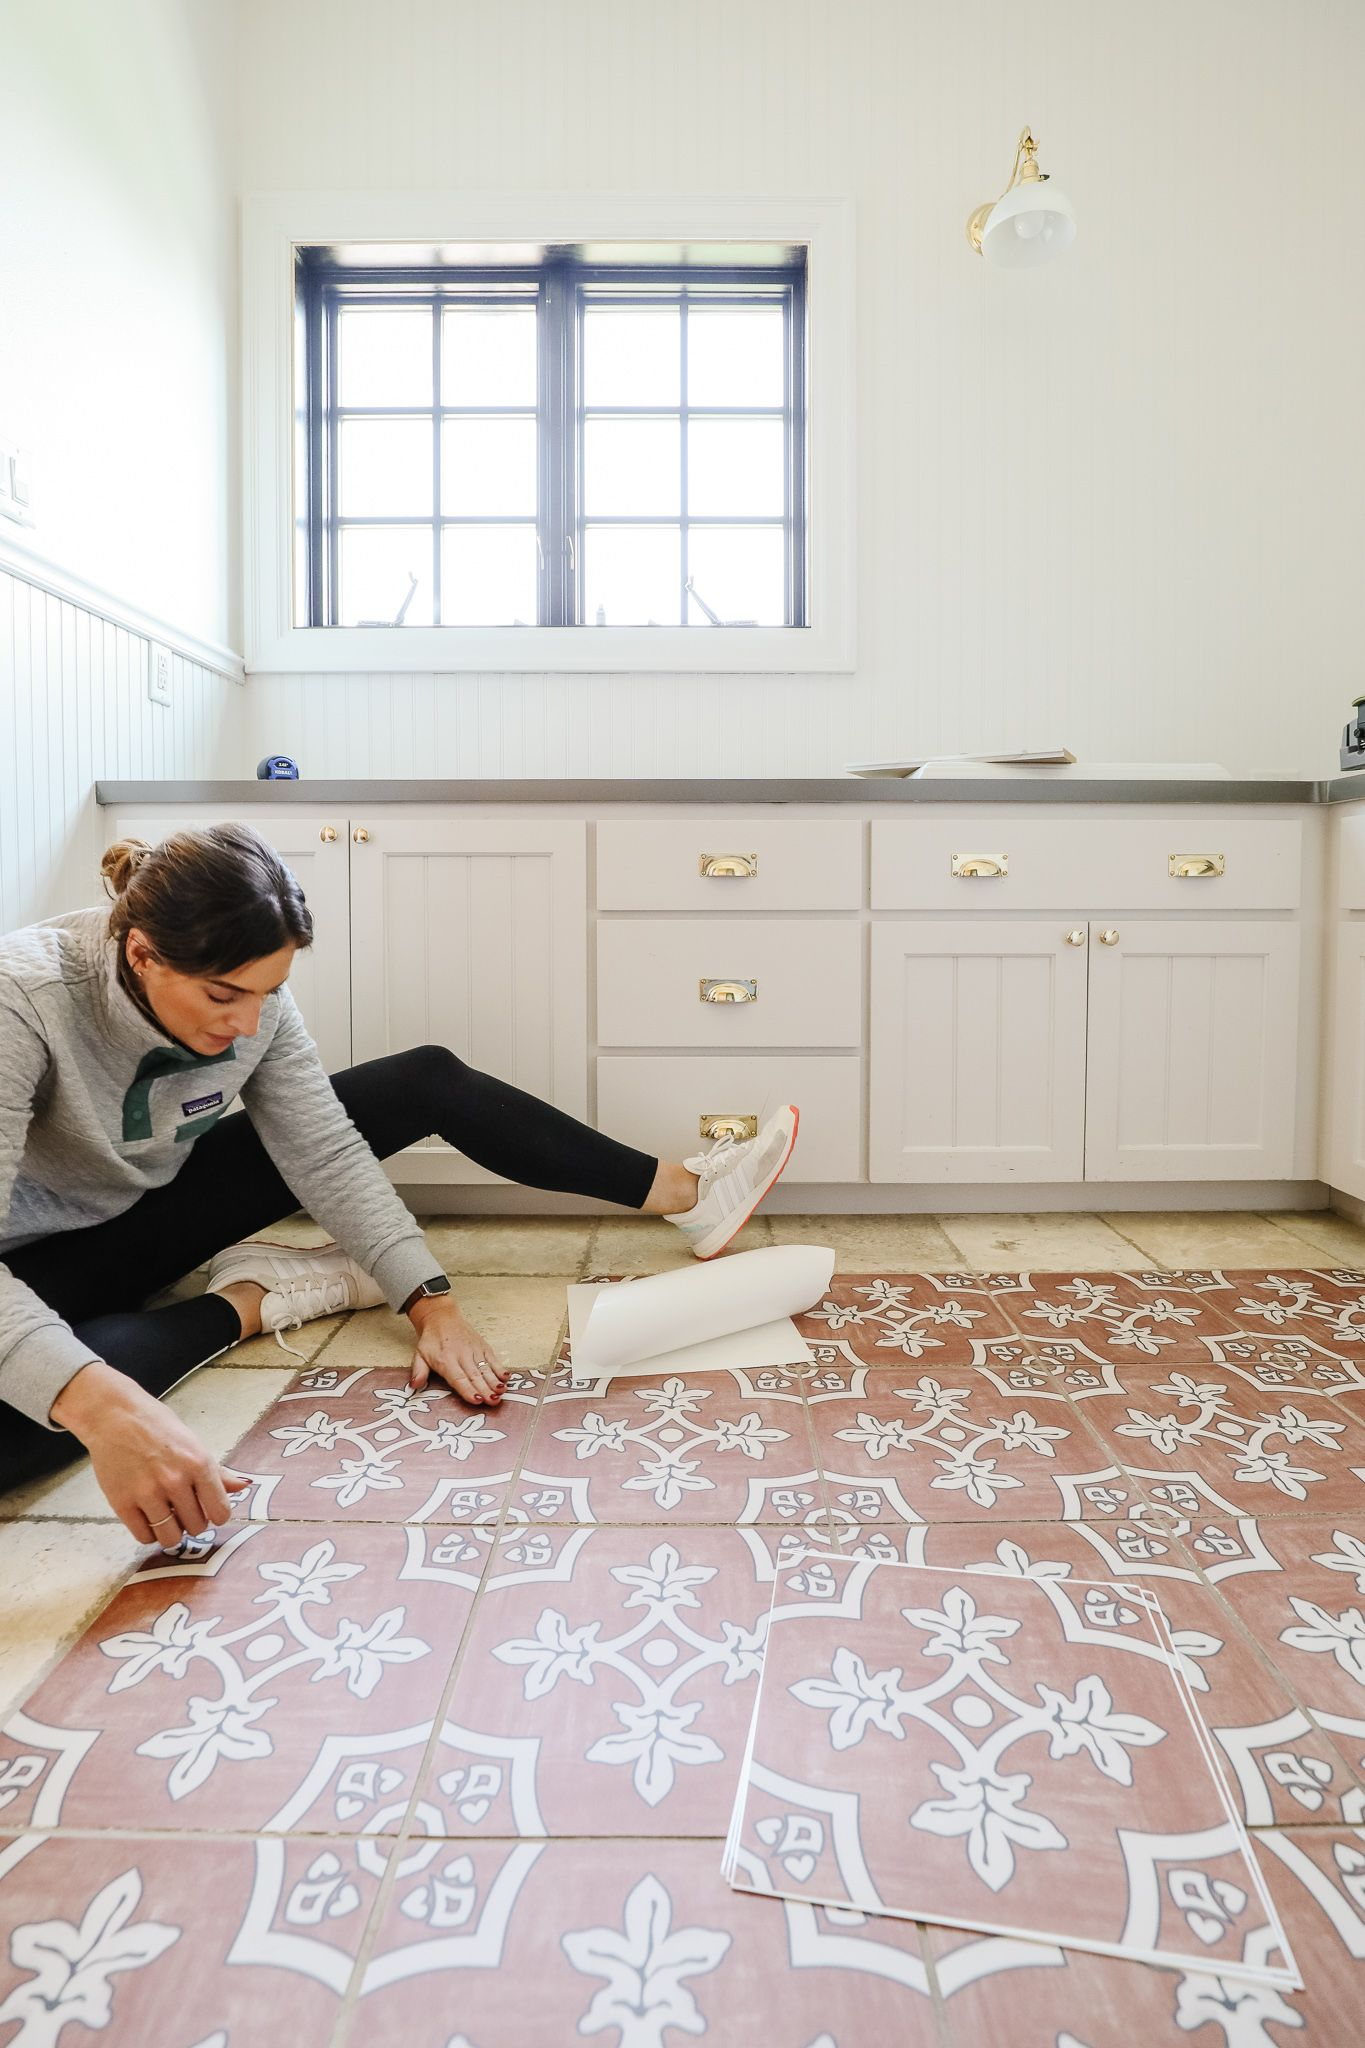 How To Laying Peel And Stick Tile Over The Bathroom Floor In 2020 Stick On Tiles Diy House Renovations Girls Bathroom